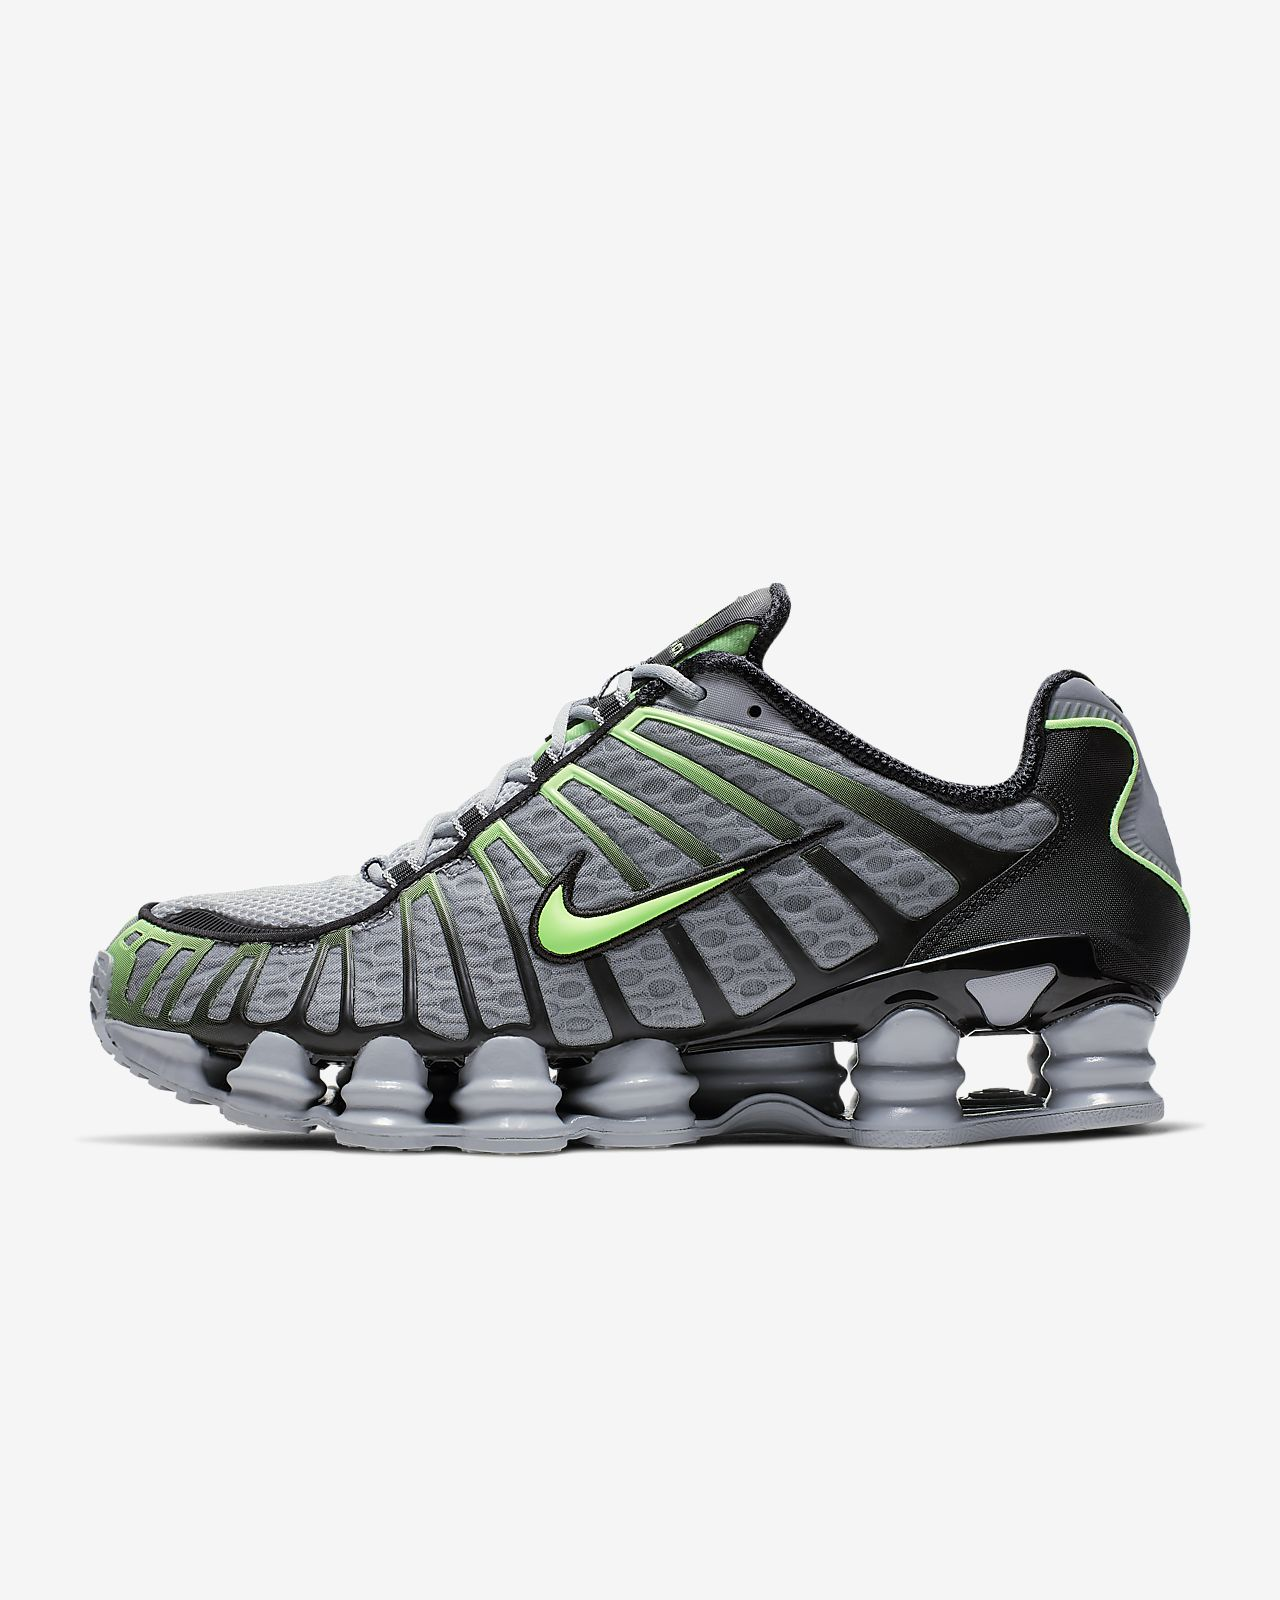 special sales outlet boutique buy Nike Shox TL Men's Shoe. Nike LU